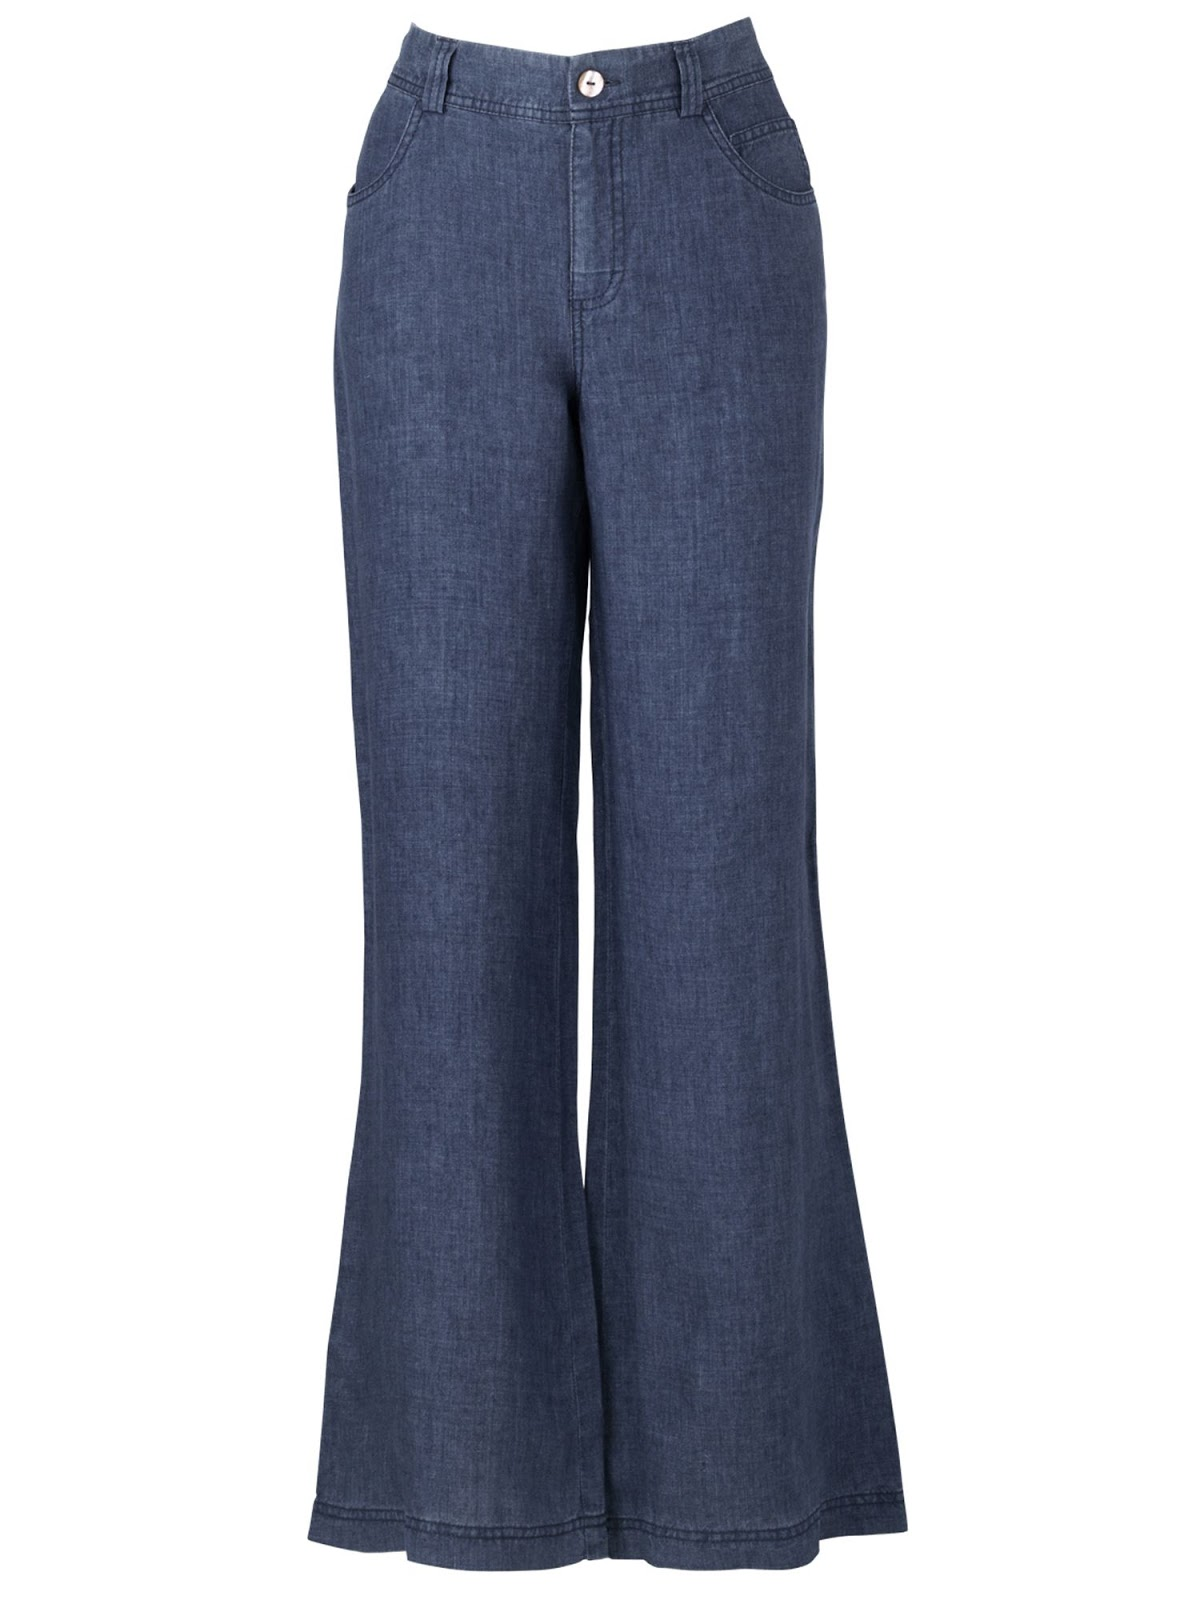 Find great deals on eBay for Flared Trousers in Women's Pants, Clothing, Shoes and Accessories. Shop with confidence.